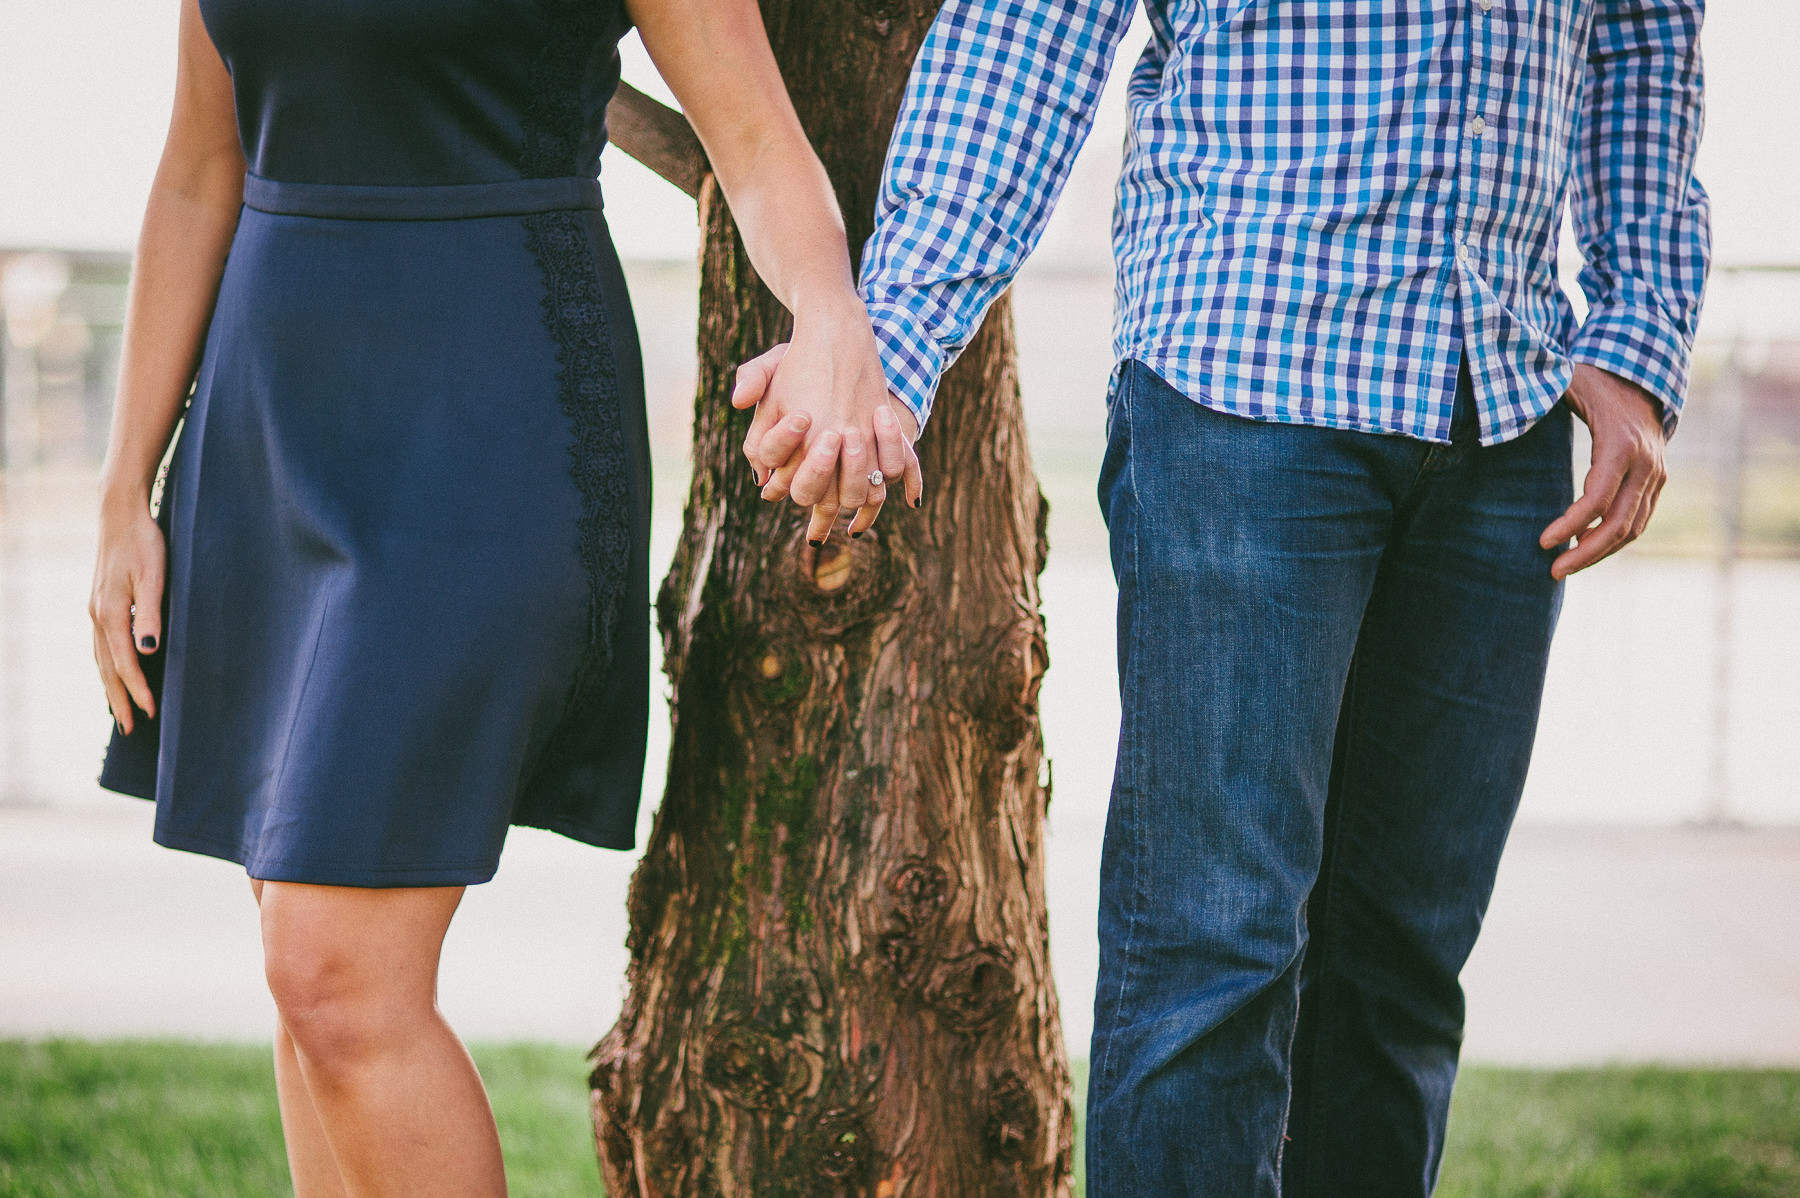 breighton-and-basette-photography-copyrighted-image-blog-anna-marie-and-steve-engagement-003.jpg